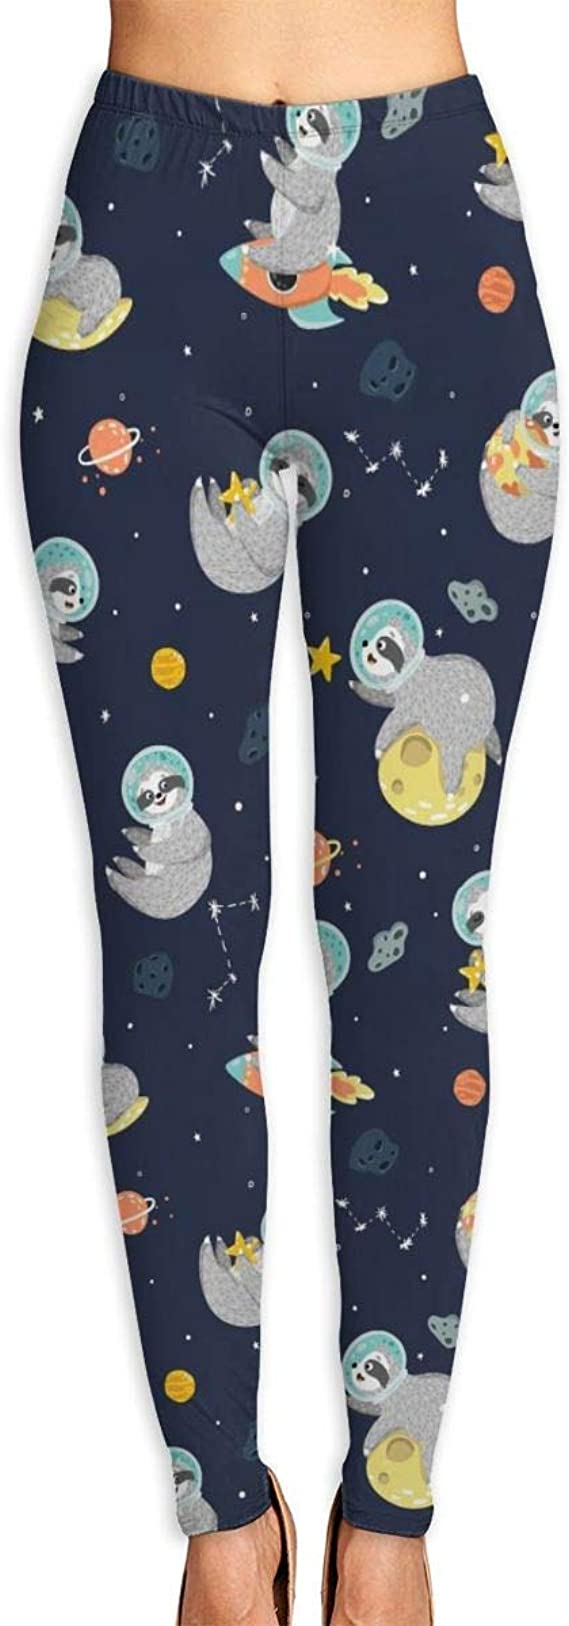 AAAshorts Space with Funny Sloth Pantalones de yoga ...